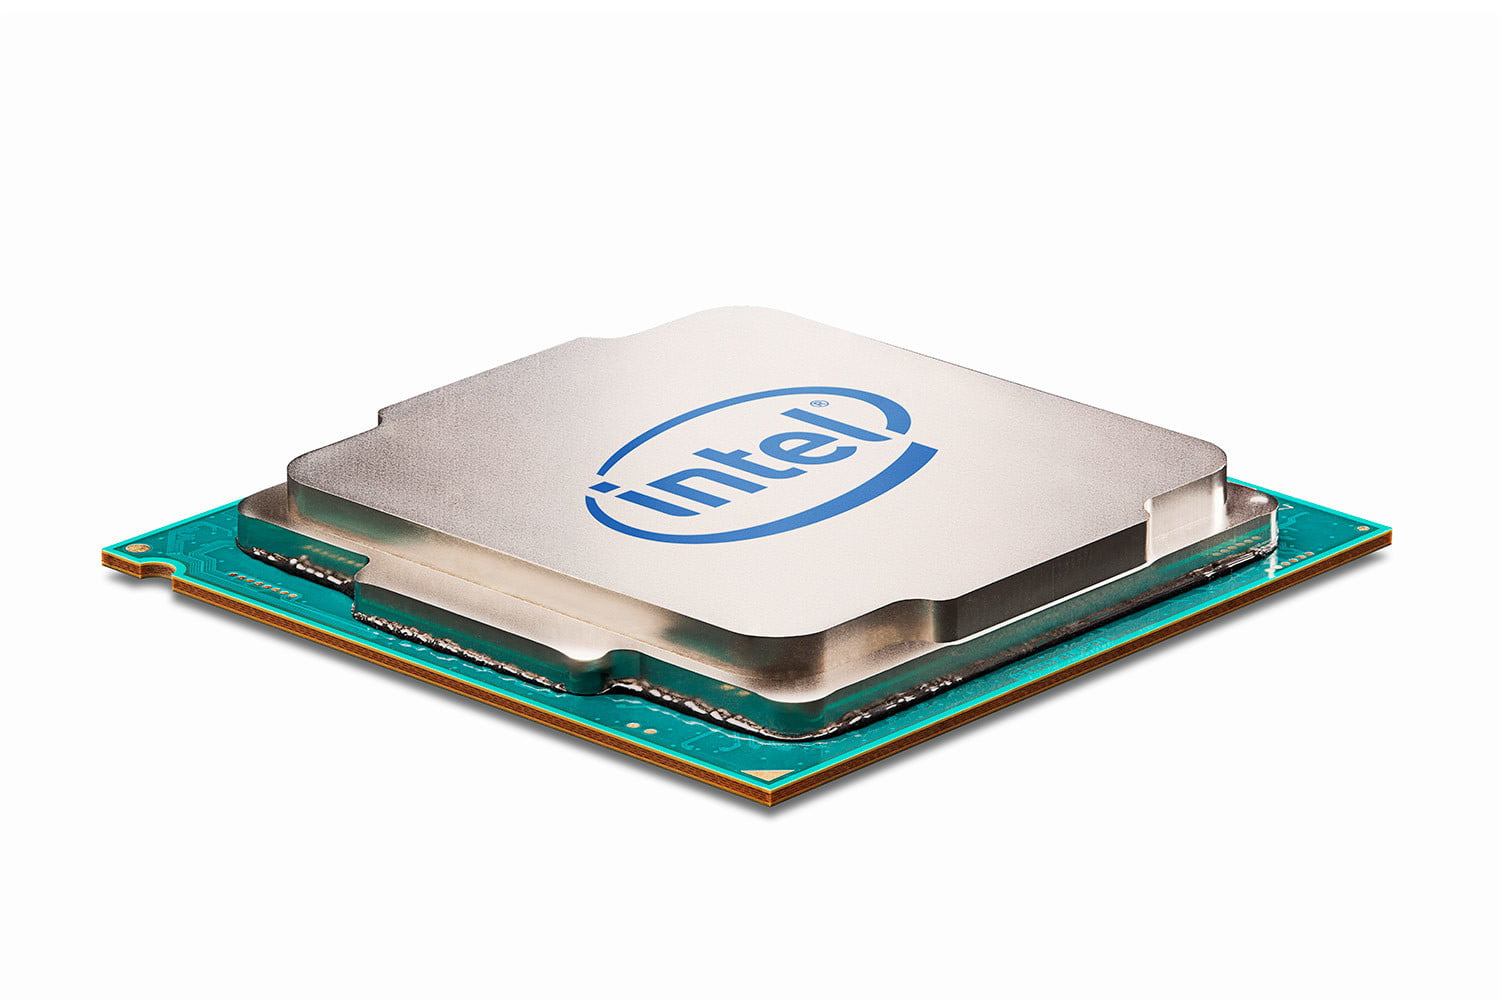 7th generation intel core ces 2017 kby lake s persp left low 05 whitebkg